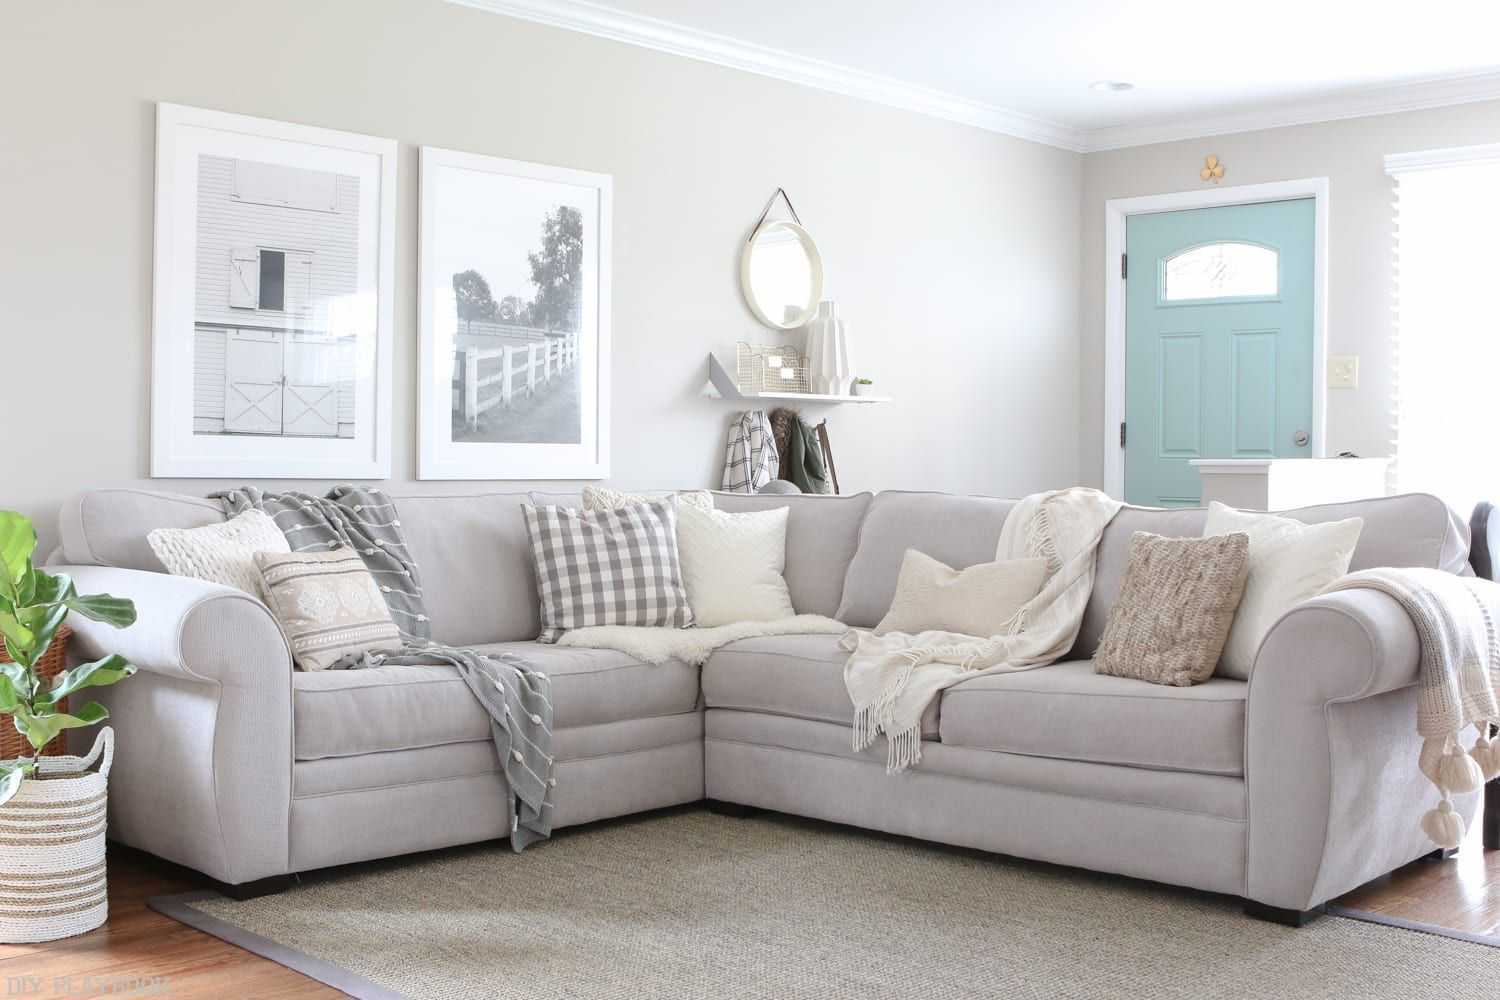 Best Pottery Barn Living Room Ideas How To Choose Throw 400 x 300